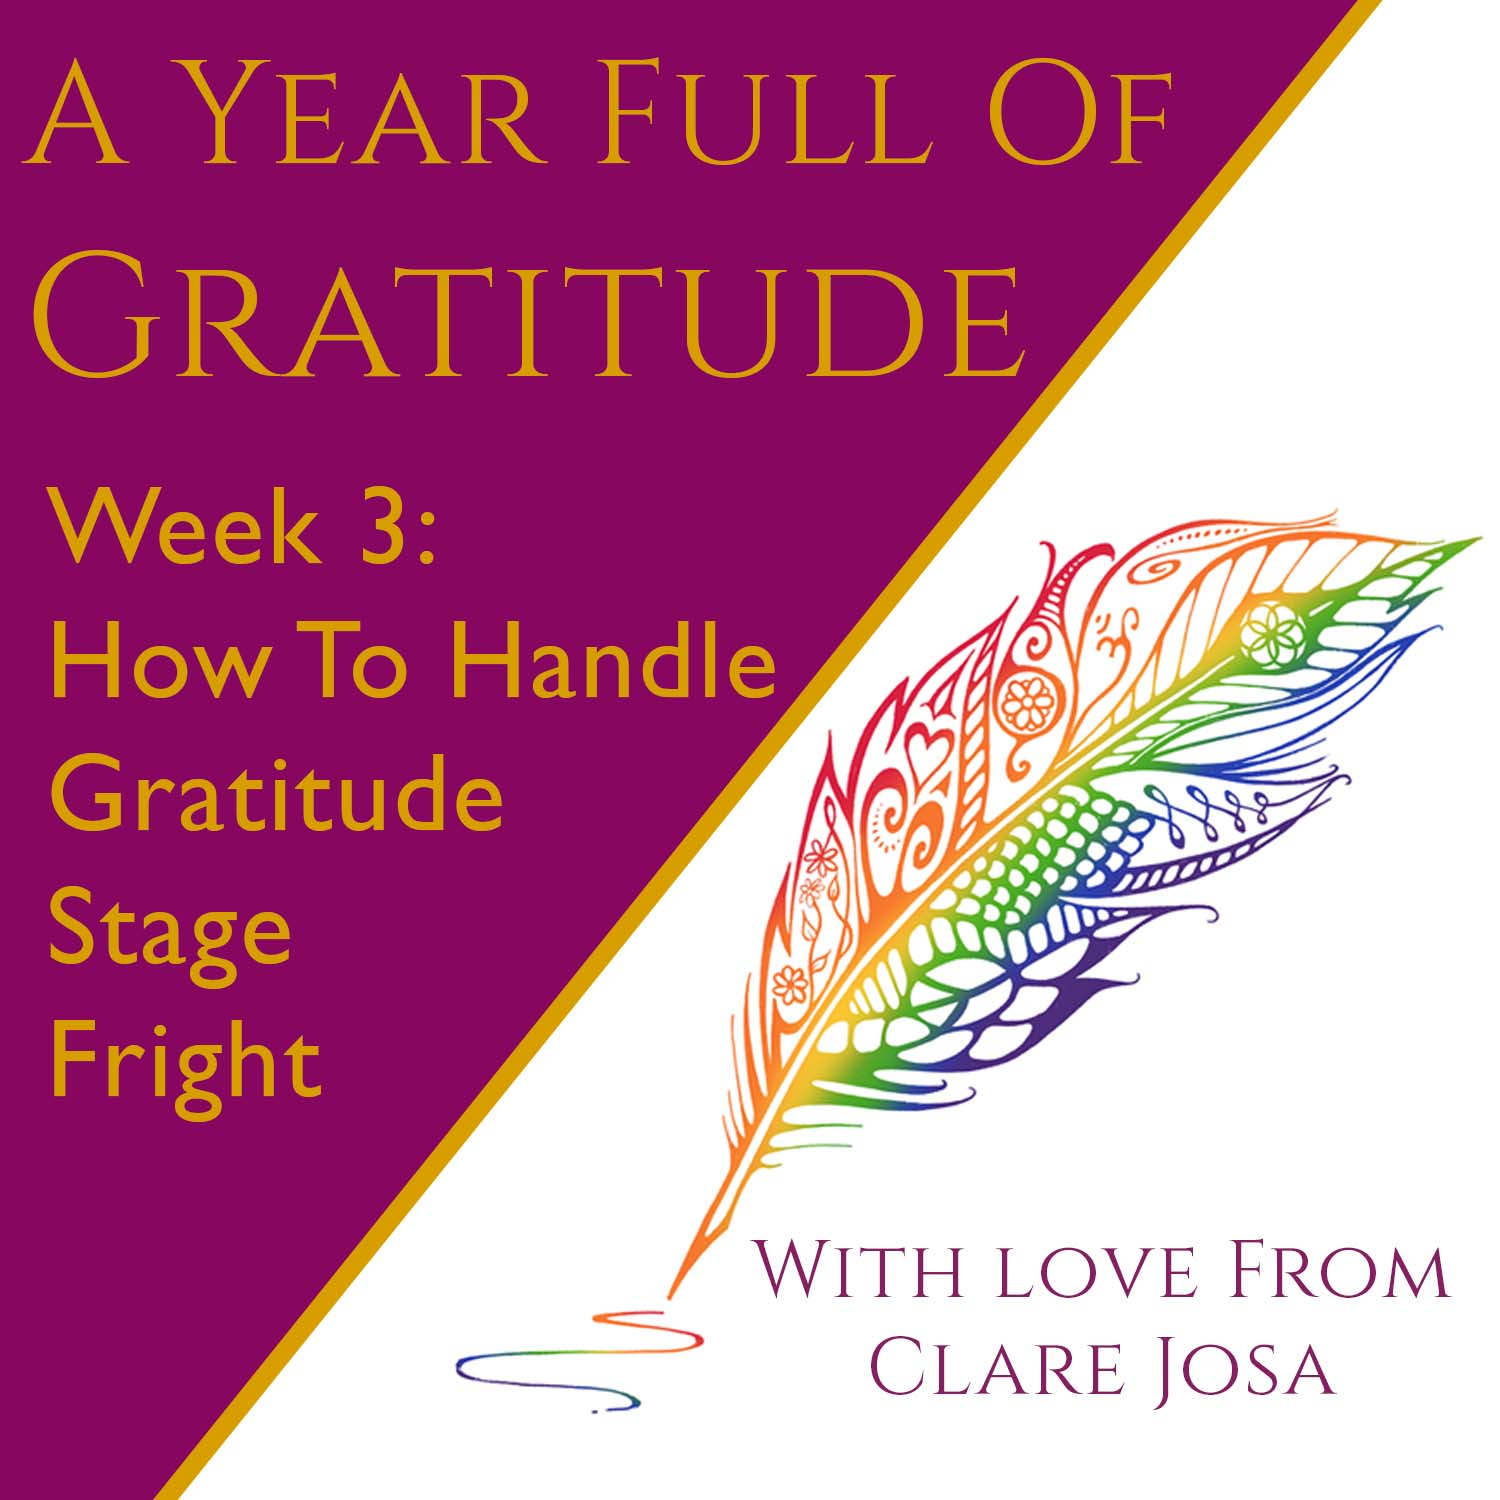 Gratitude Week 3: How To Handle Gratitude Stage Fright